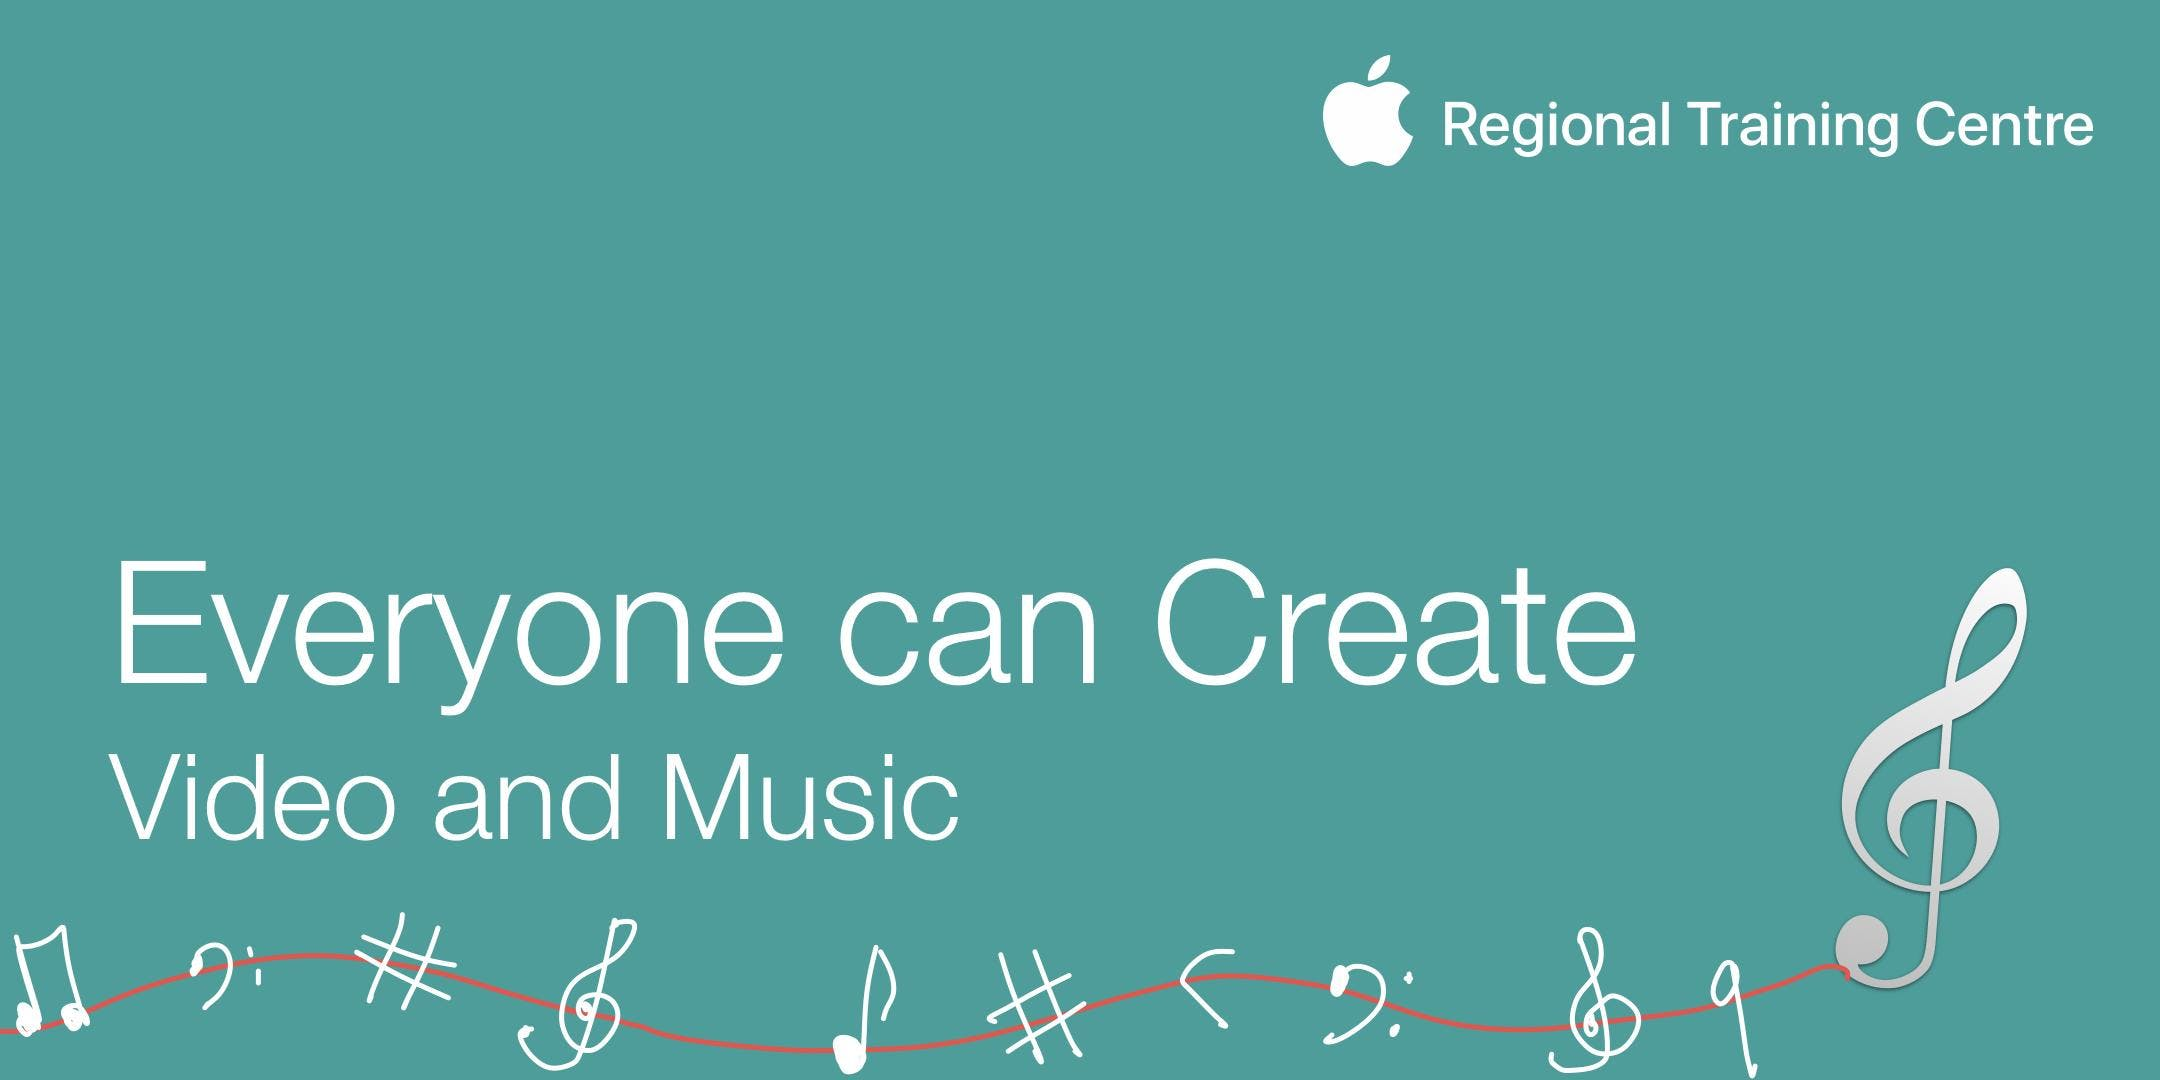 Everyone Can Create - Video and Music